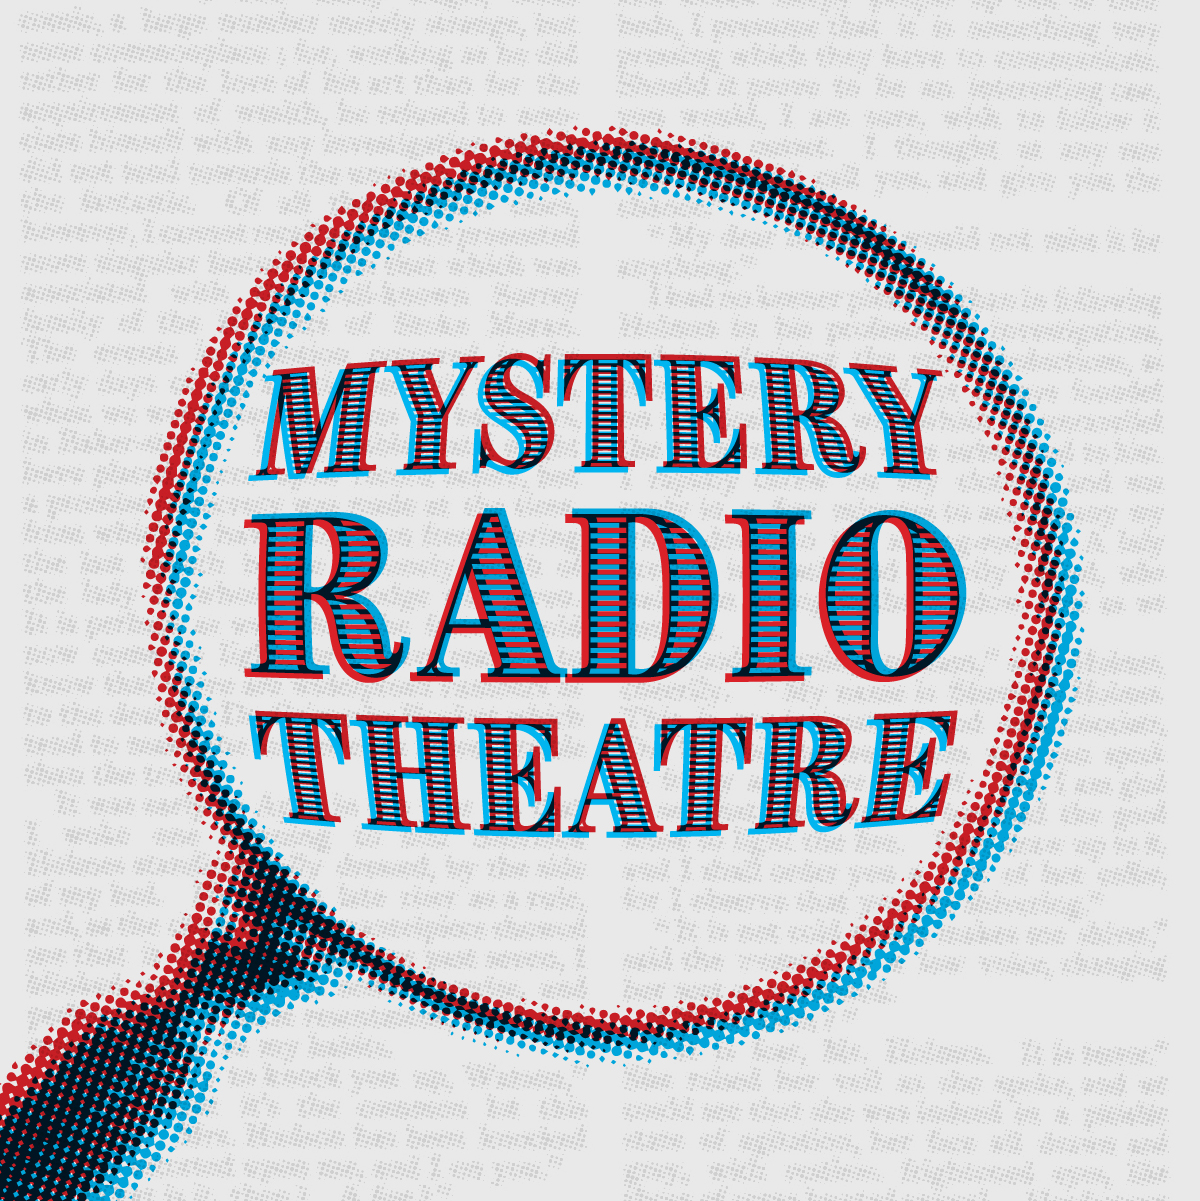 Mystery Radio Theatre - magnifying glass graphic